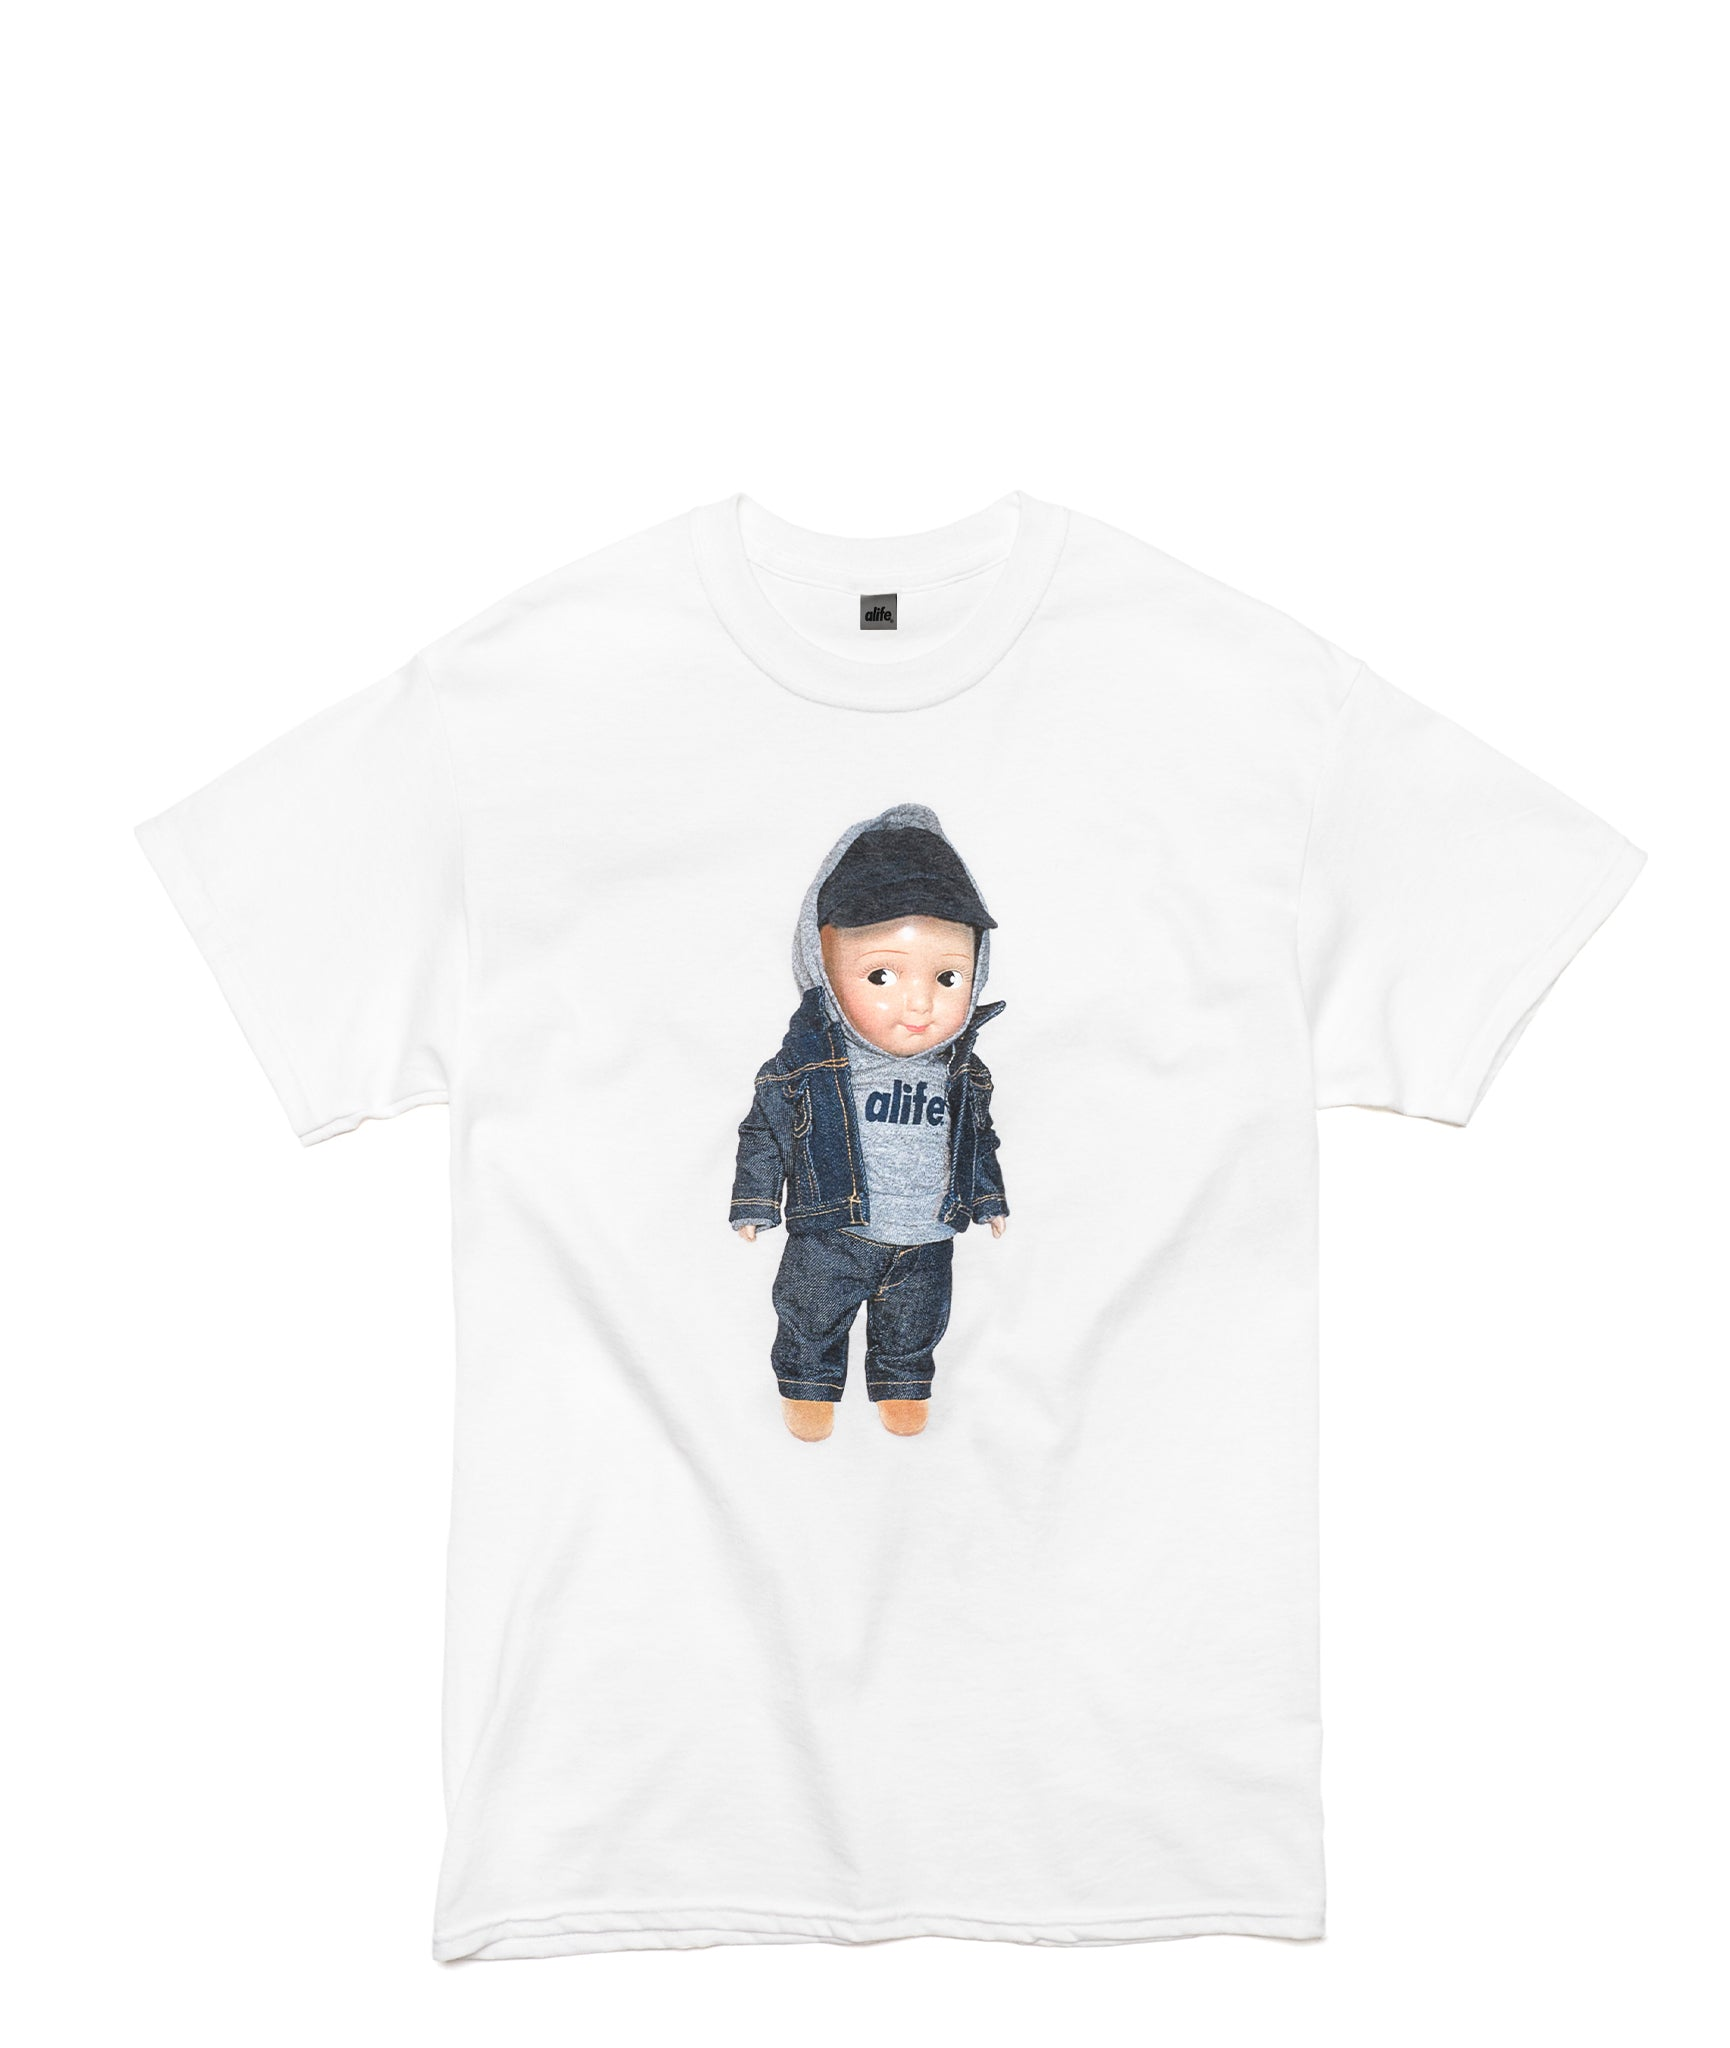 Alife/Lee Buddy Lee Tee